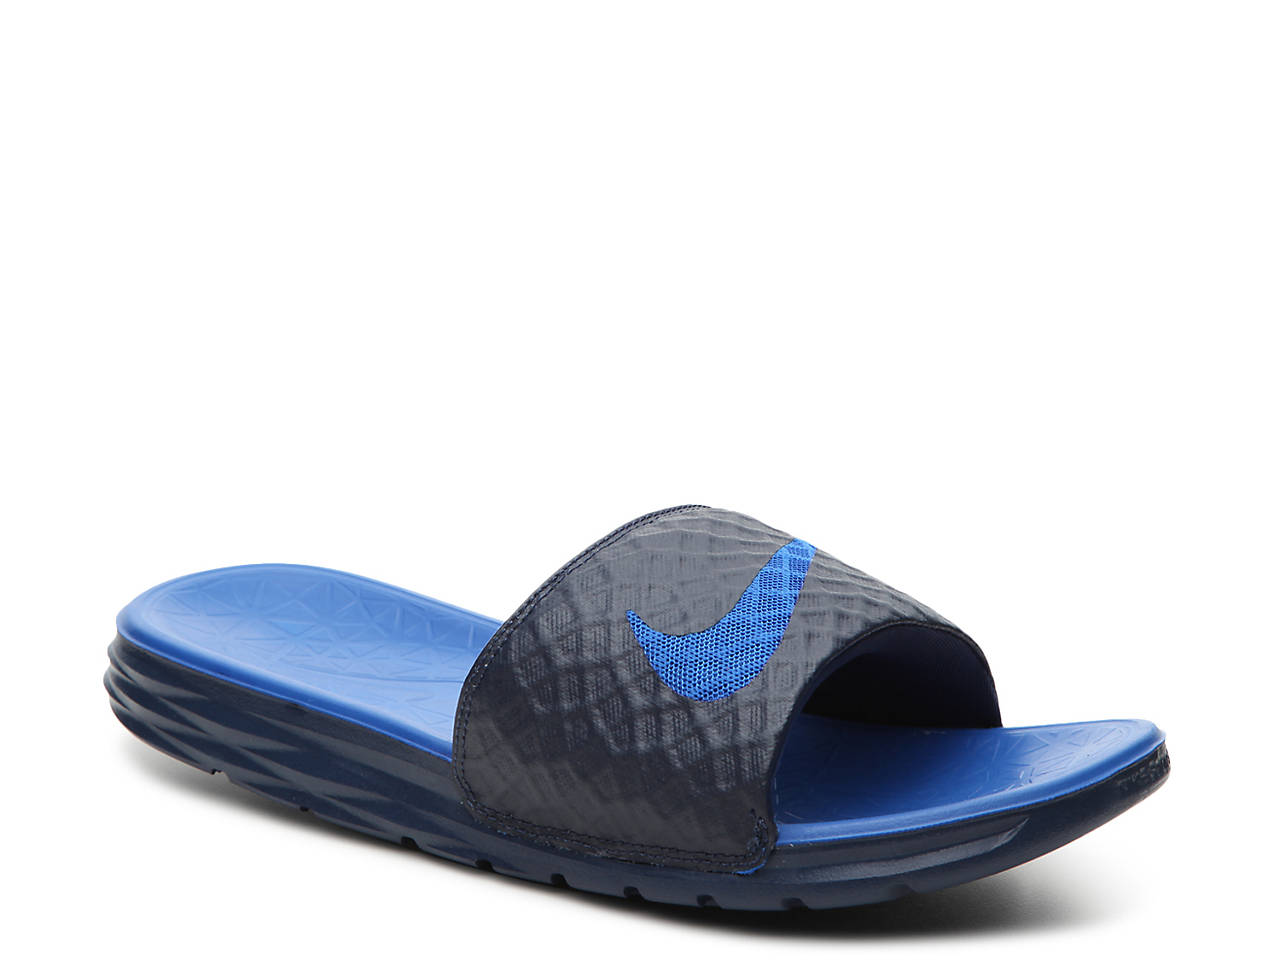 ab382a07b5cea Nike Benassi Solarsoft 2 Slide Sandal - Men s Men s Shoes